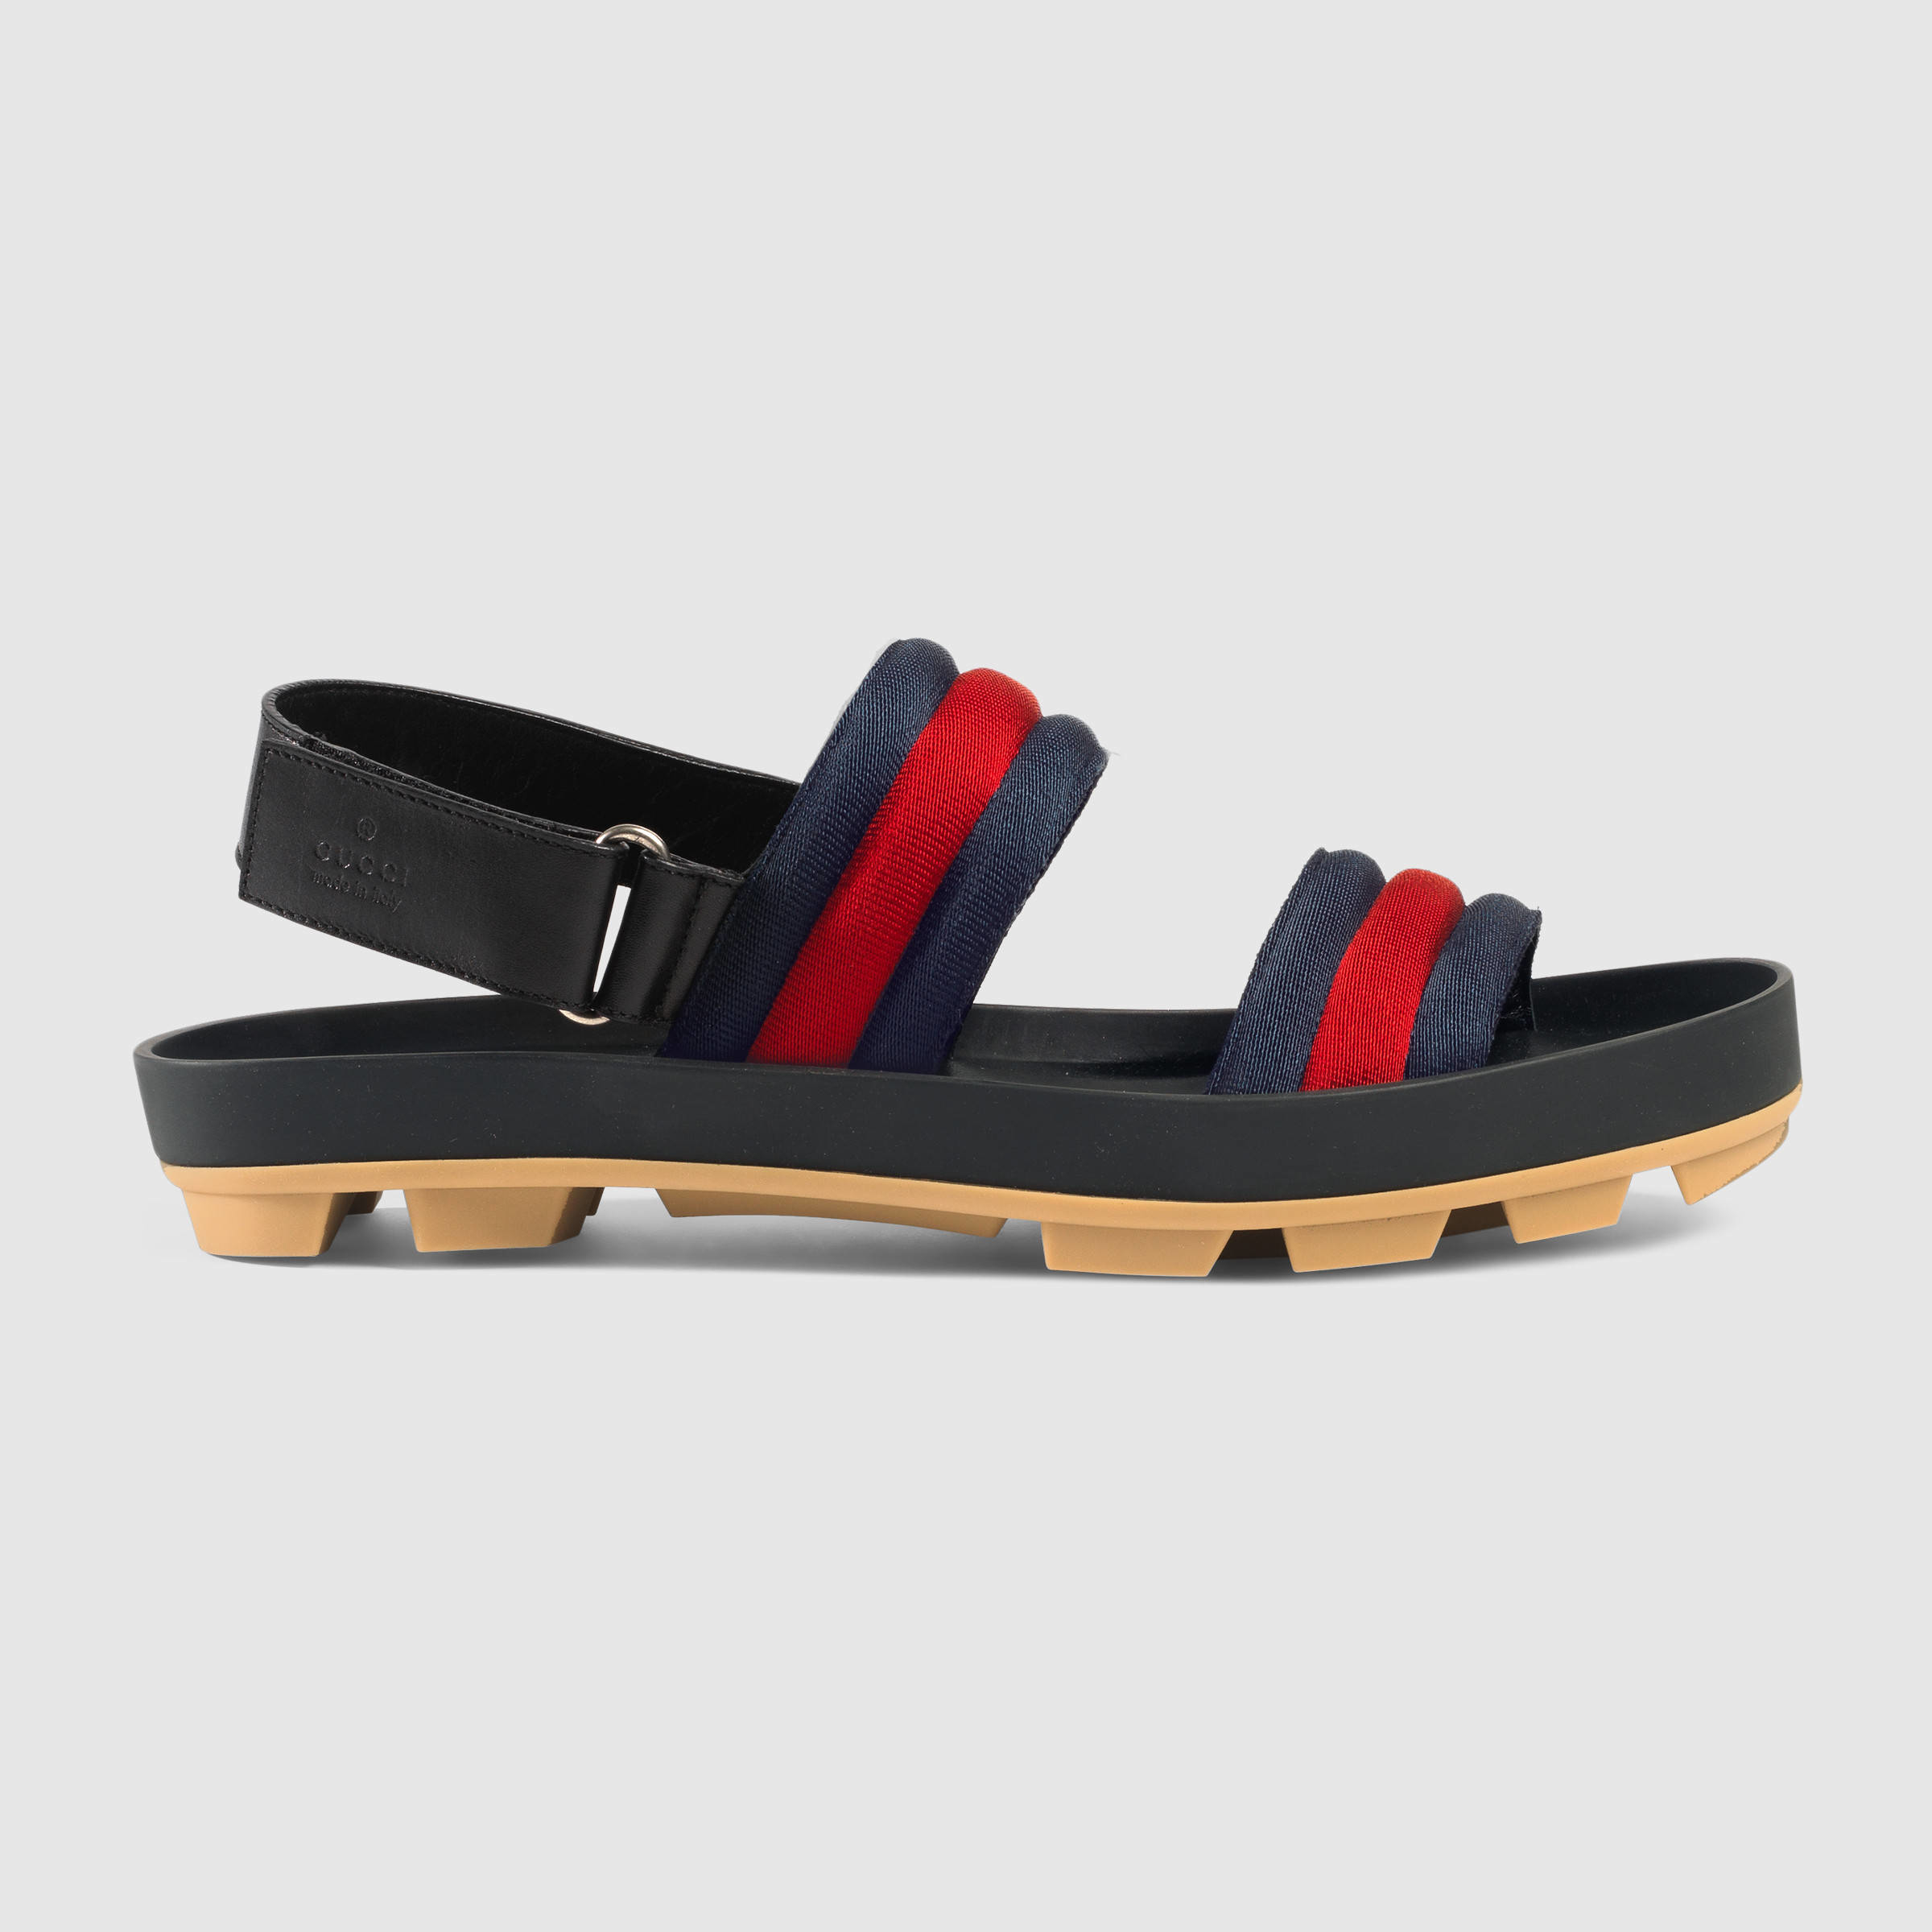 15f50879cc7 Lyst - Gucci Leather And Web Sandal for Men